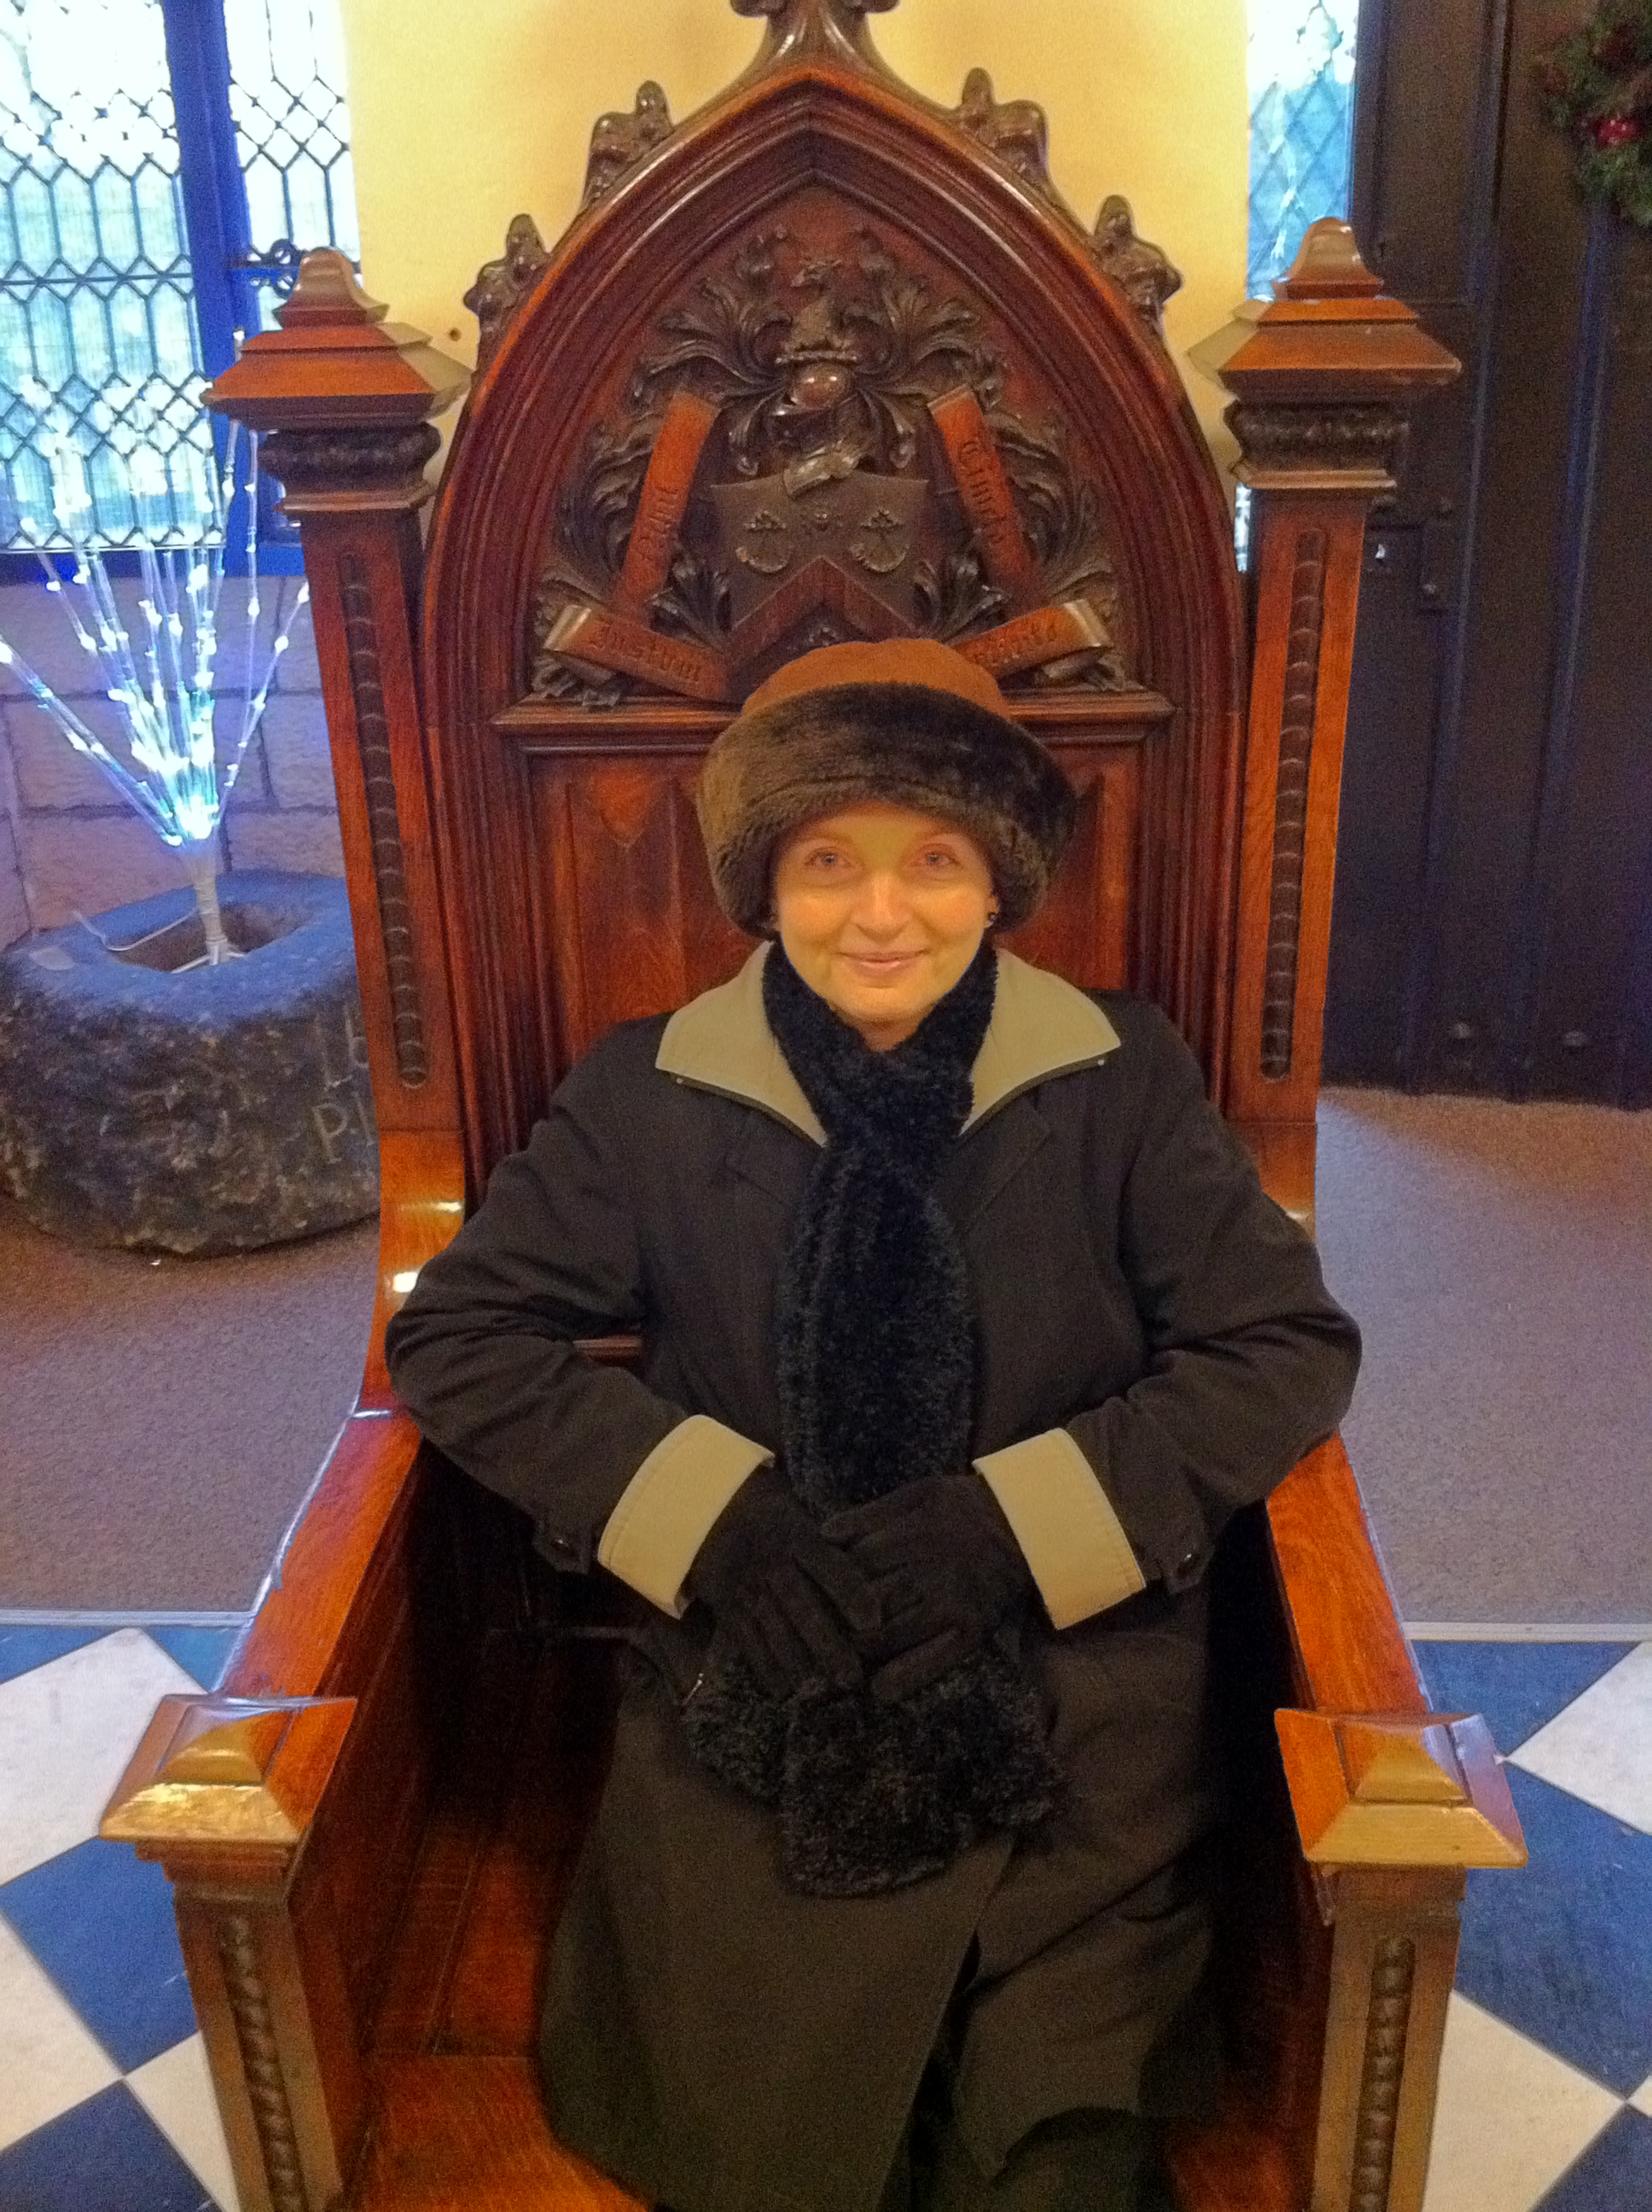 A Bishop's Cathedra